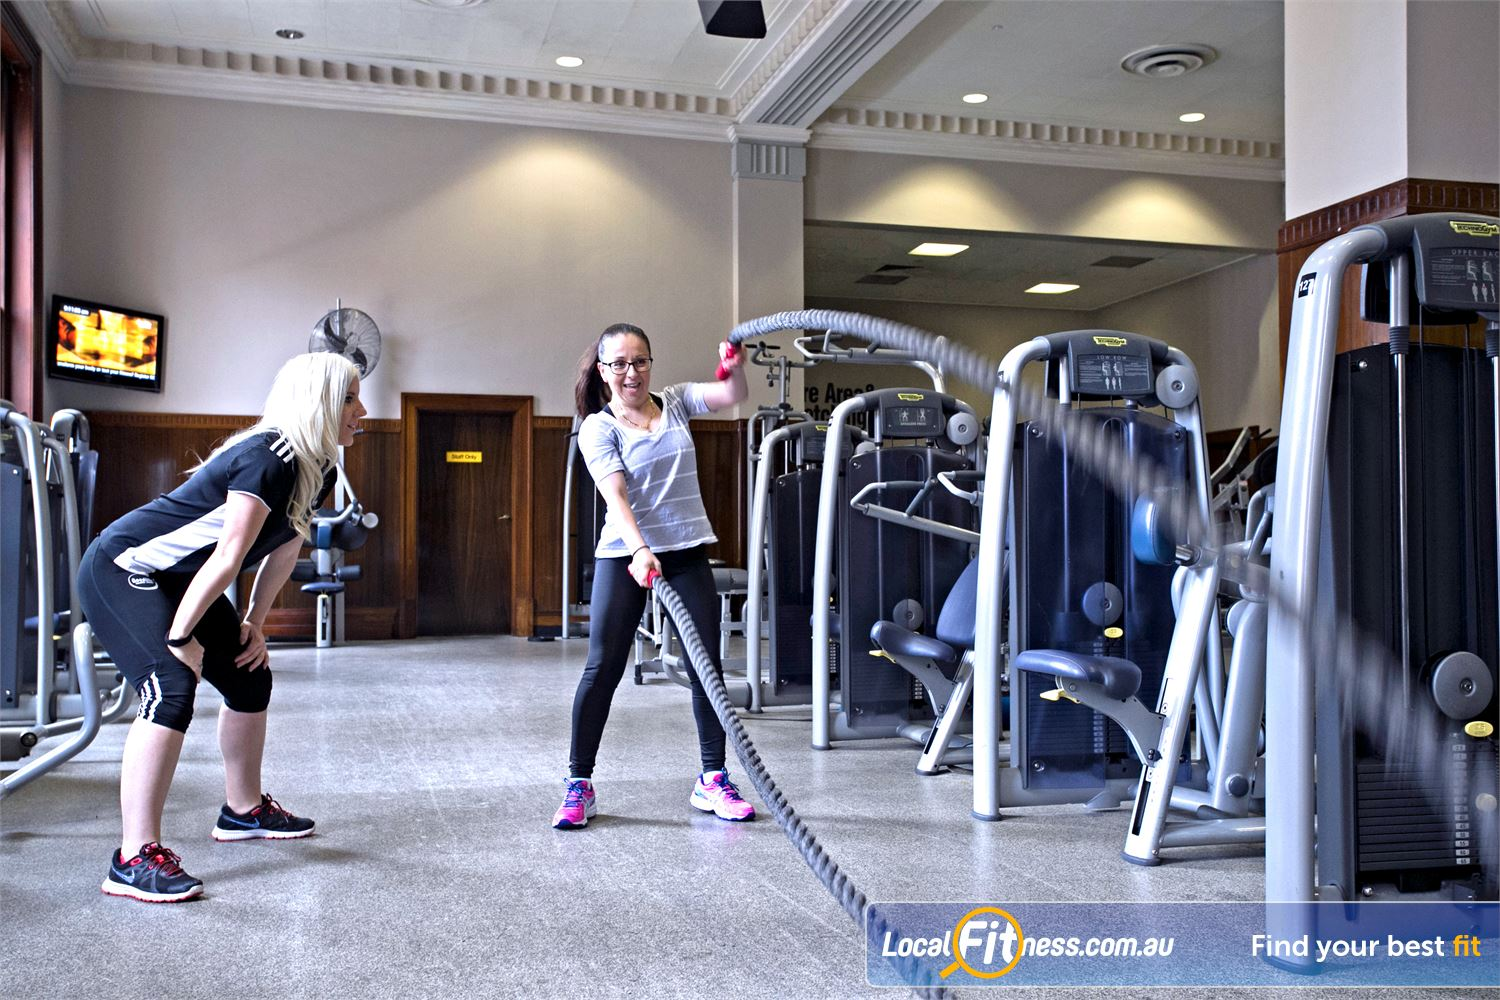 Goodlife Health Clubs Adelaide City Adelaide Fast track your results with Adelaide personal training.